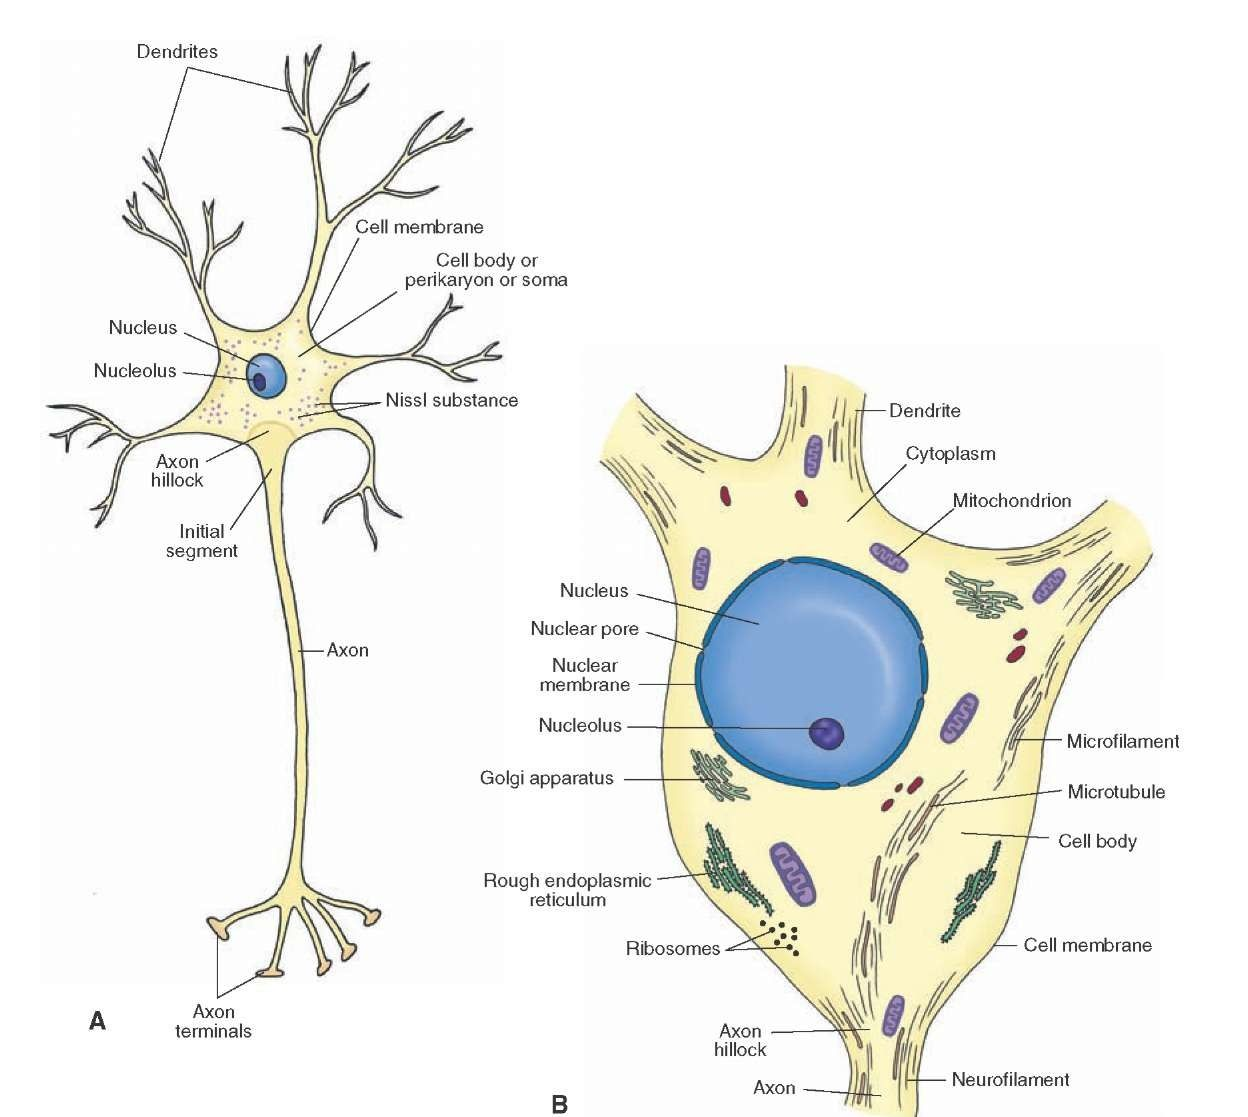 Histology Of The Nervous System The Neuron Part 1 Neurons Cell Diagram Brain Nervous System